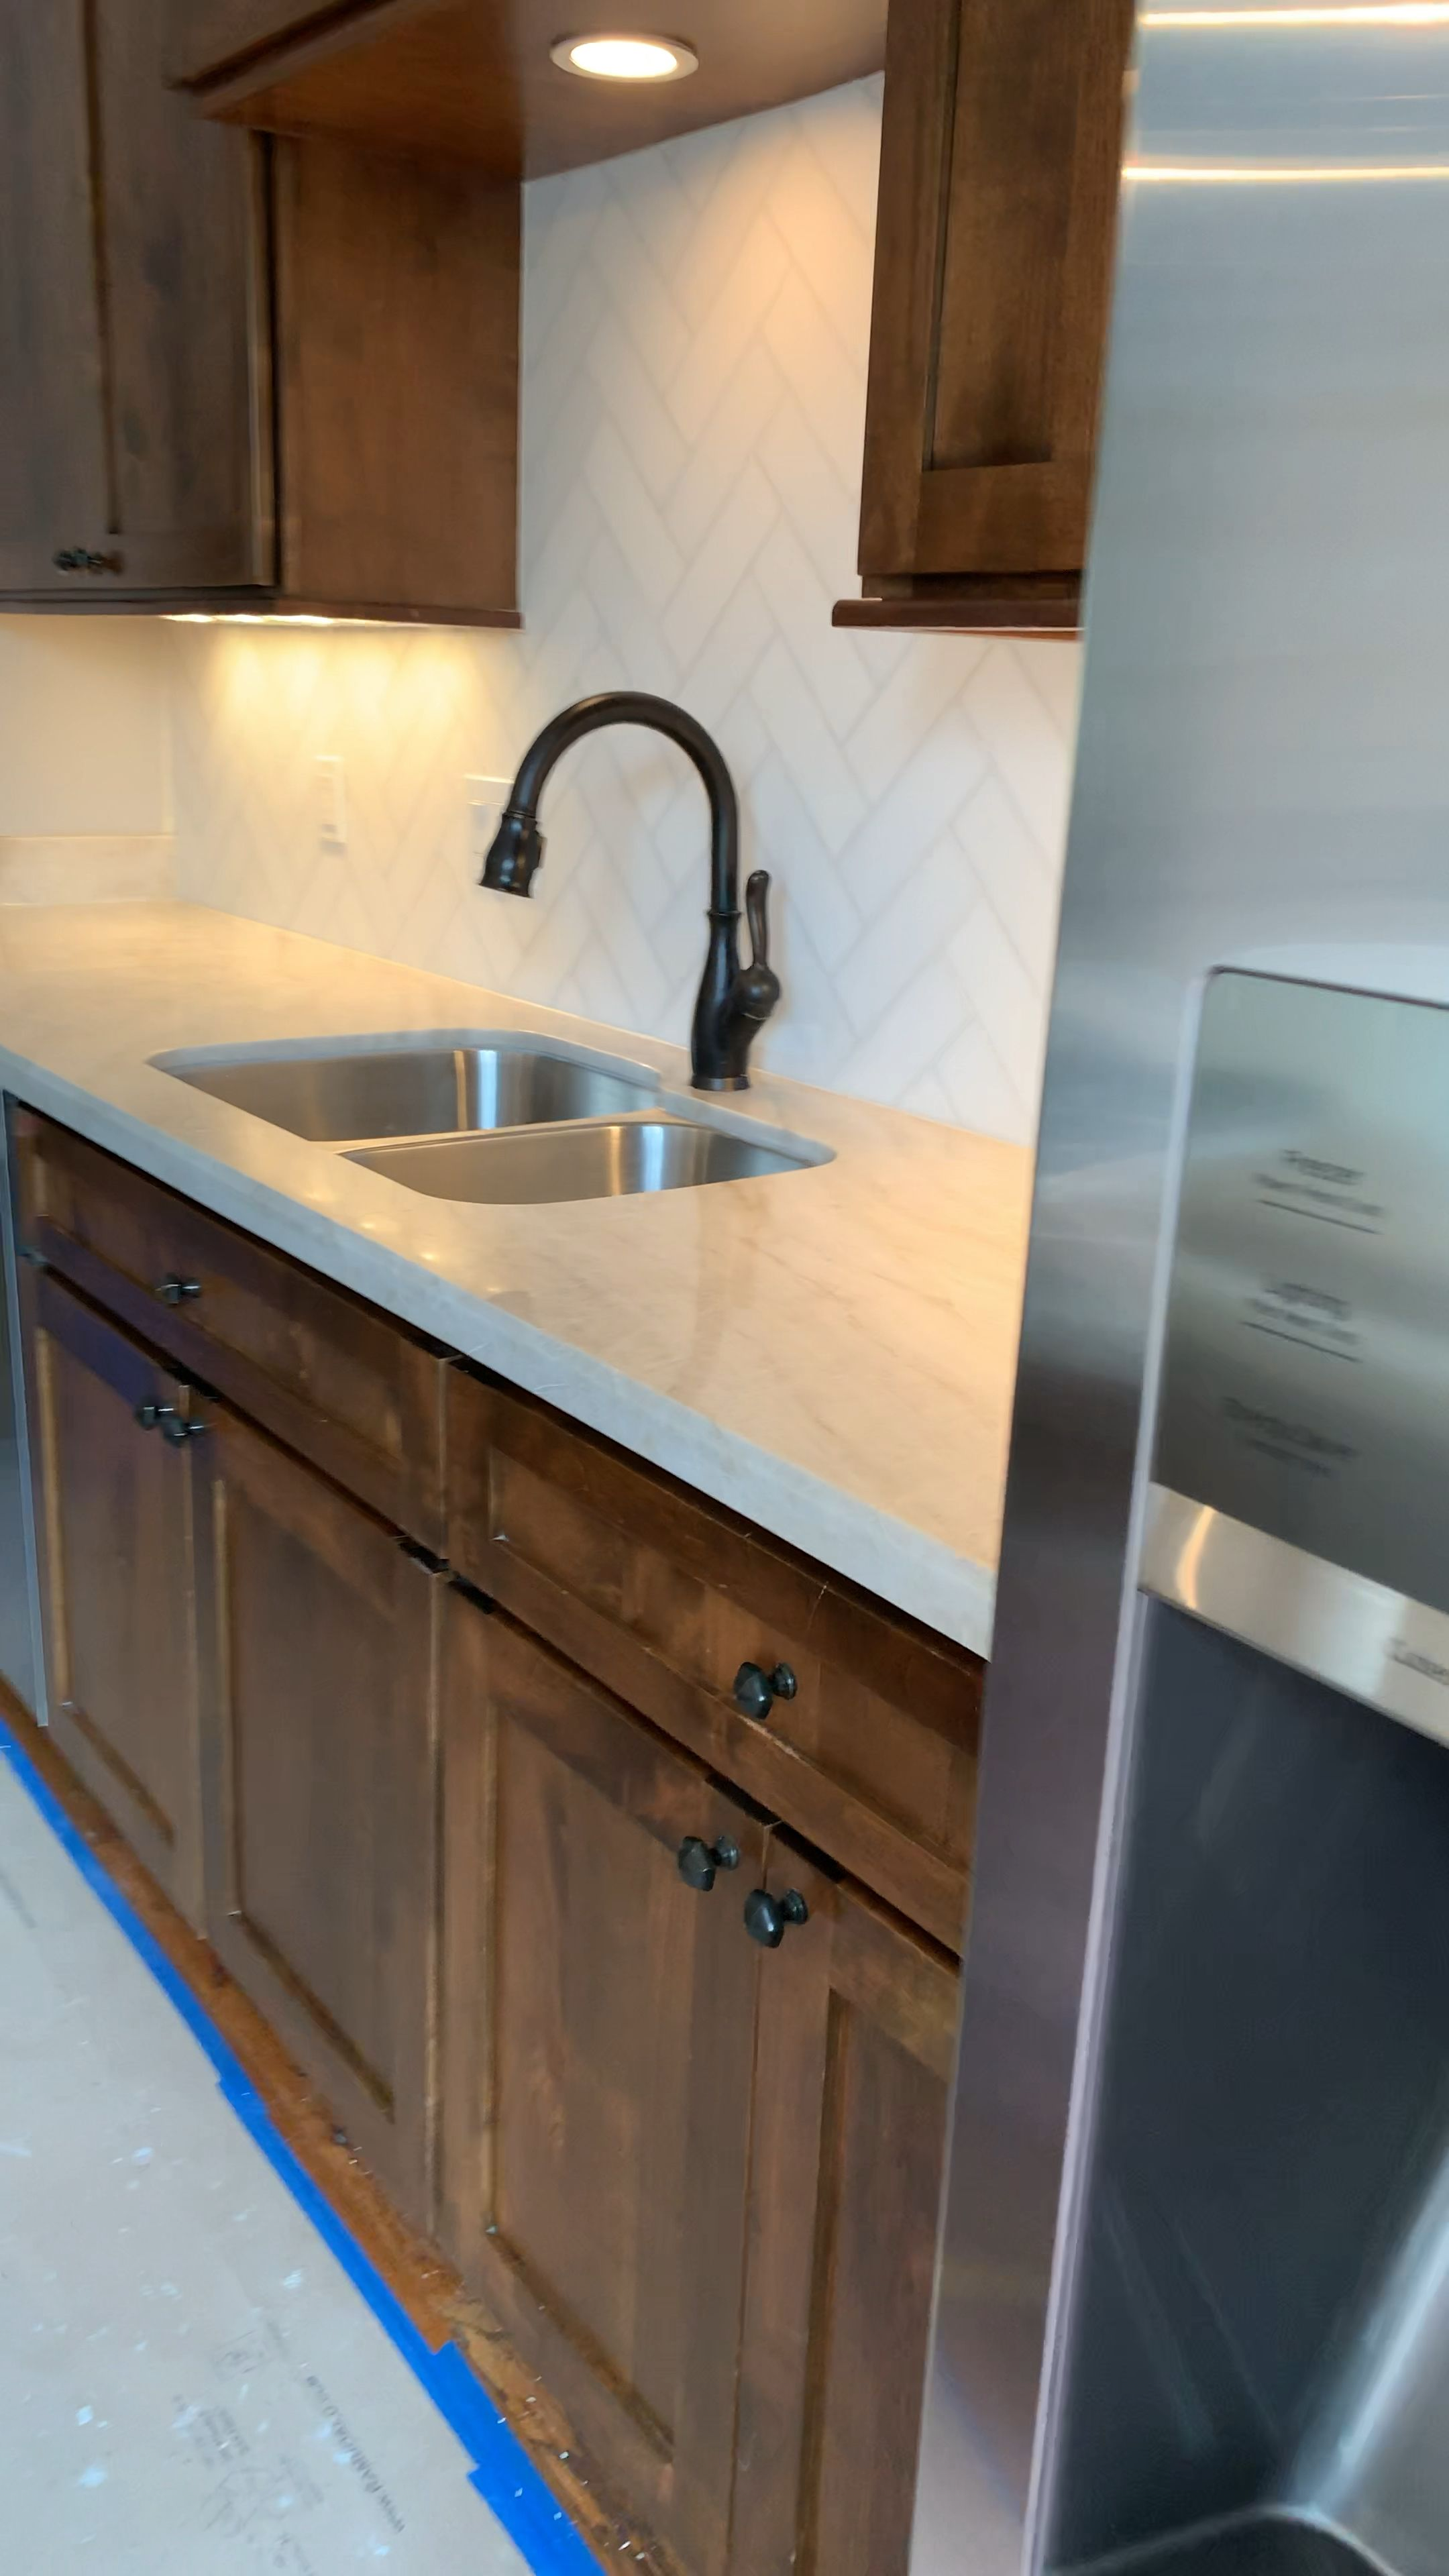 Photo of Herringbone kitchen backsplash